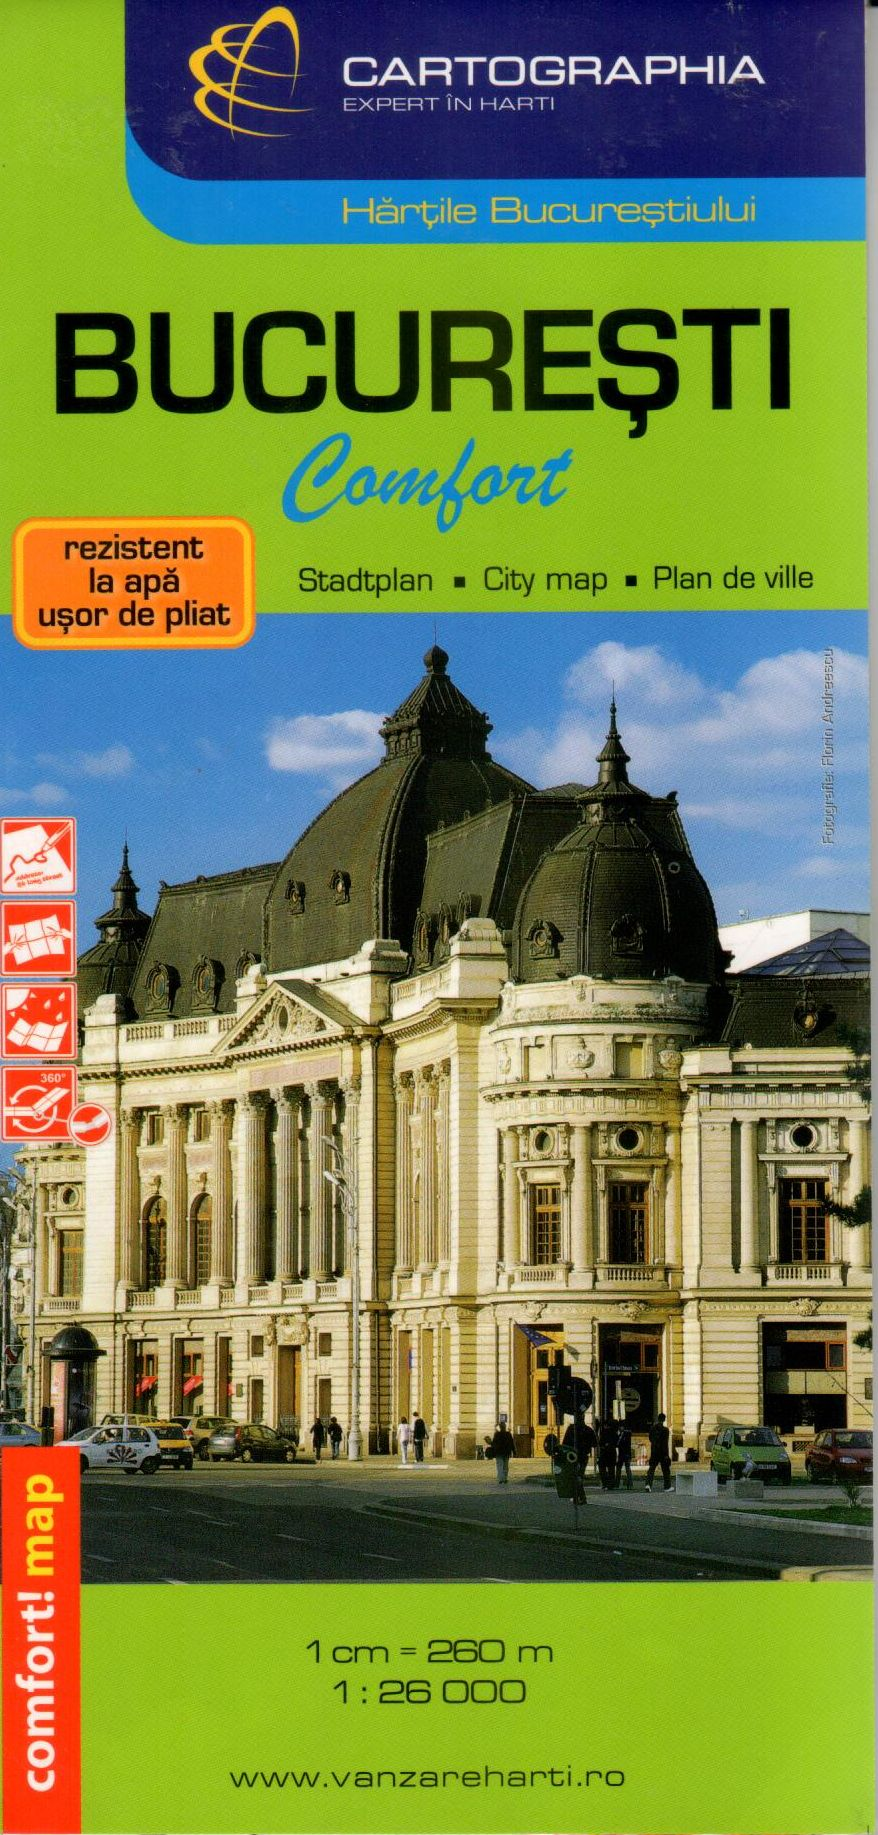 Easy to fold and waterproof laminated map Bucuresti comfort with street index and sights